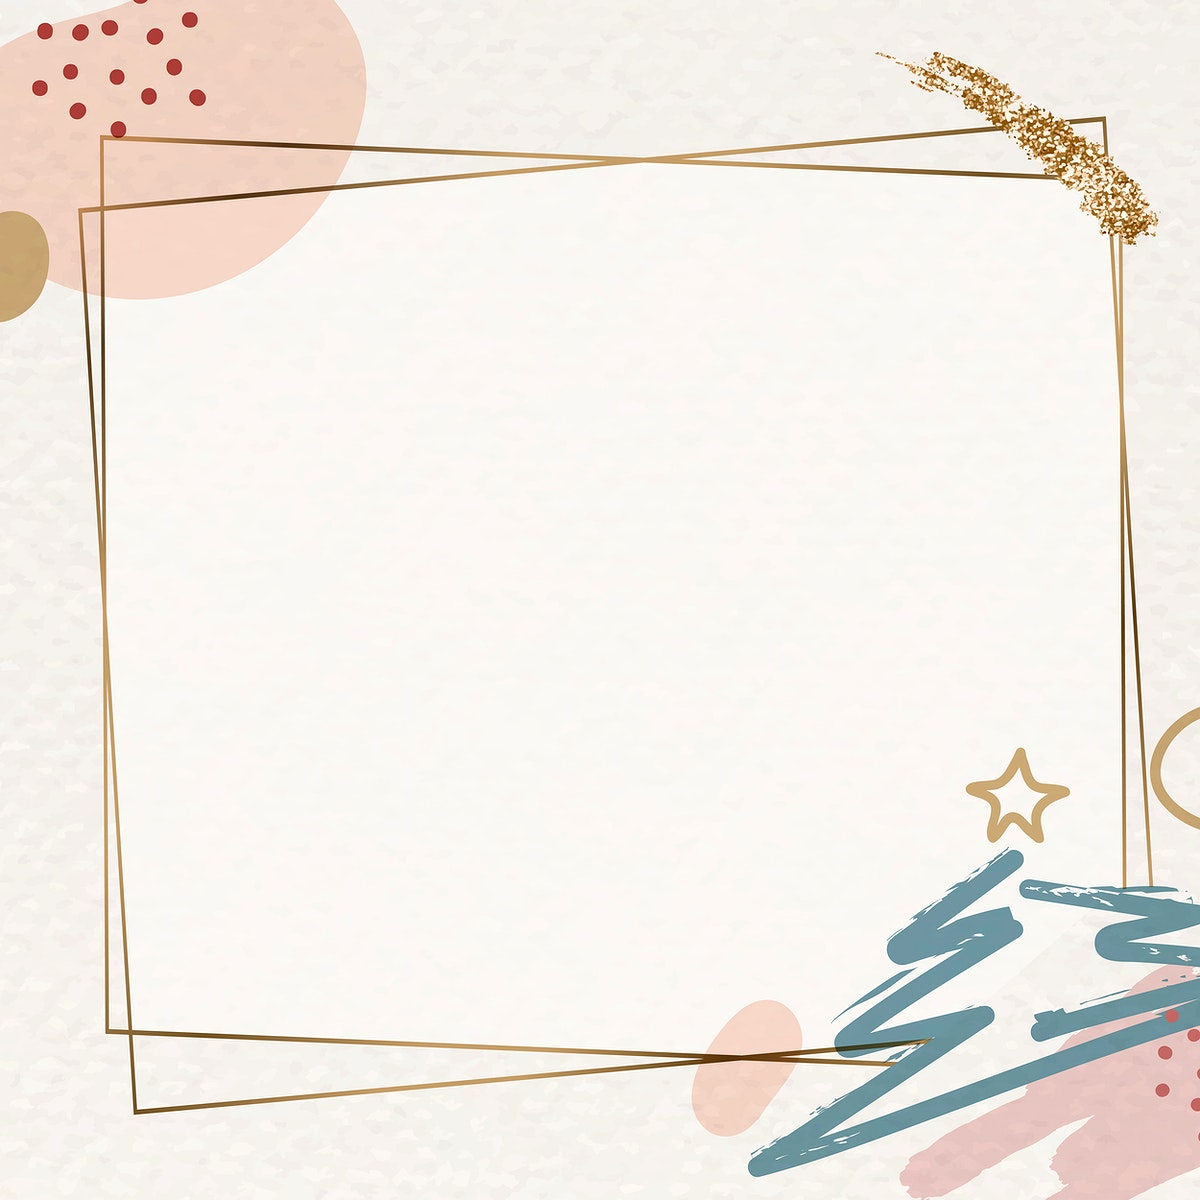 Gold frame on Christmas pattern background vector